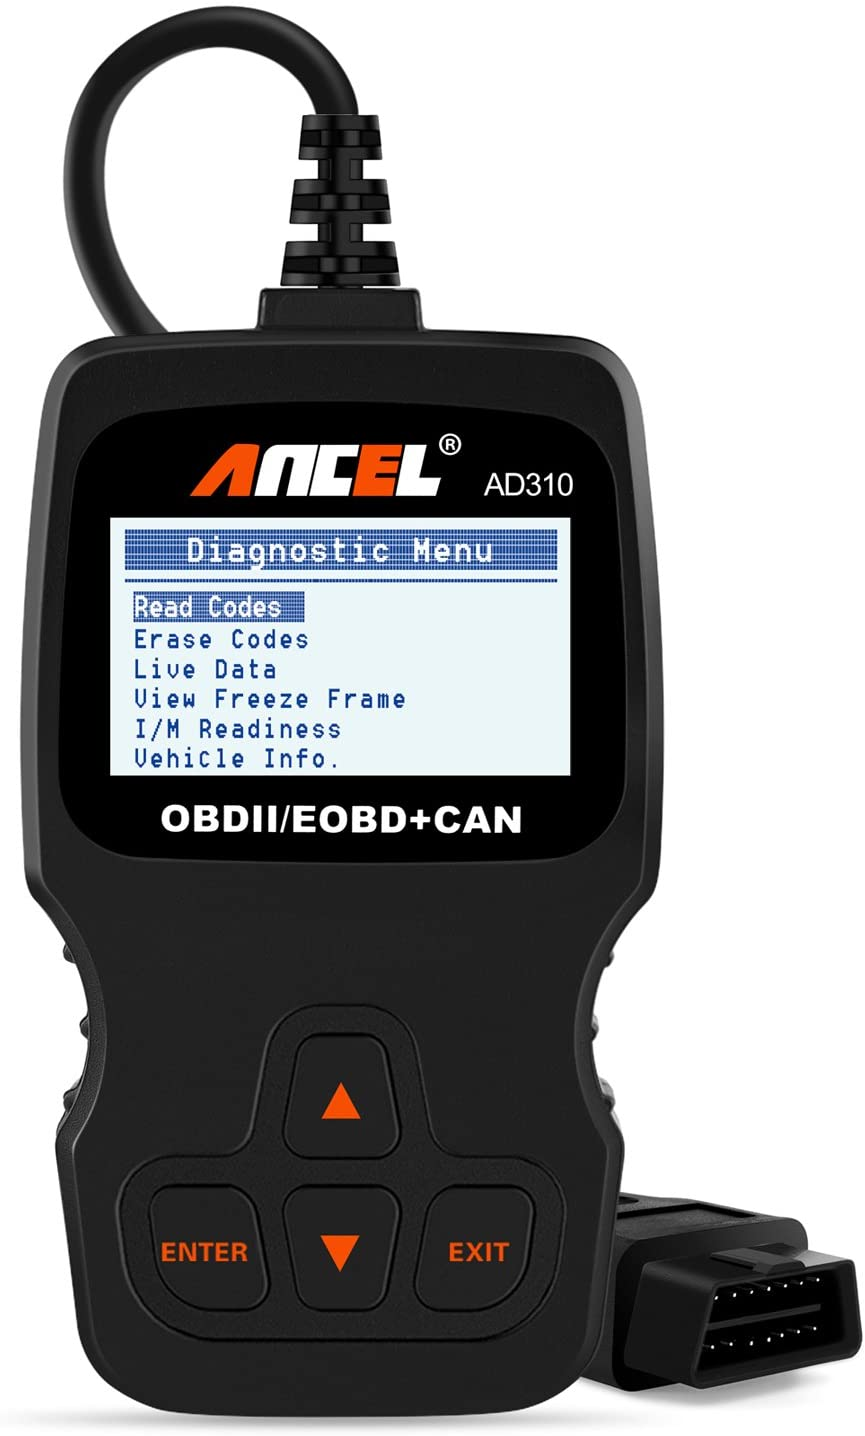 Ancel AD310 Universal CAN OBD2 Scanner